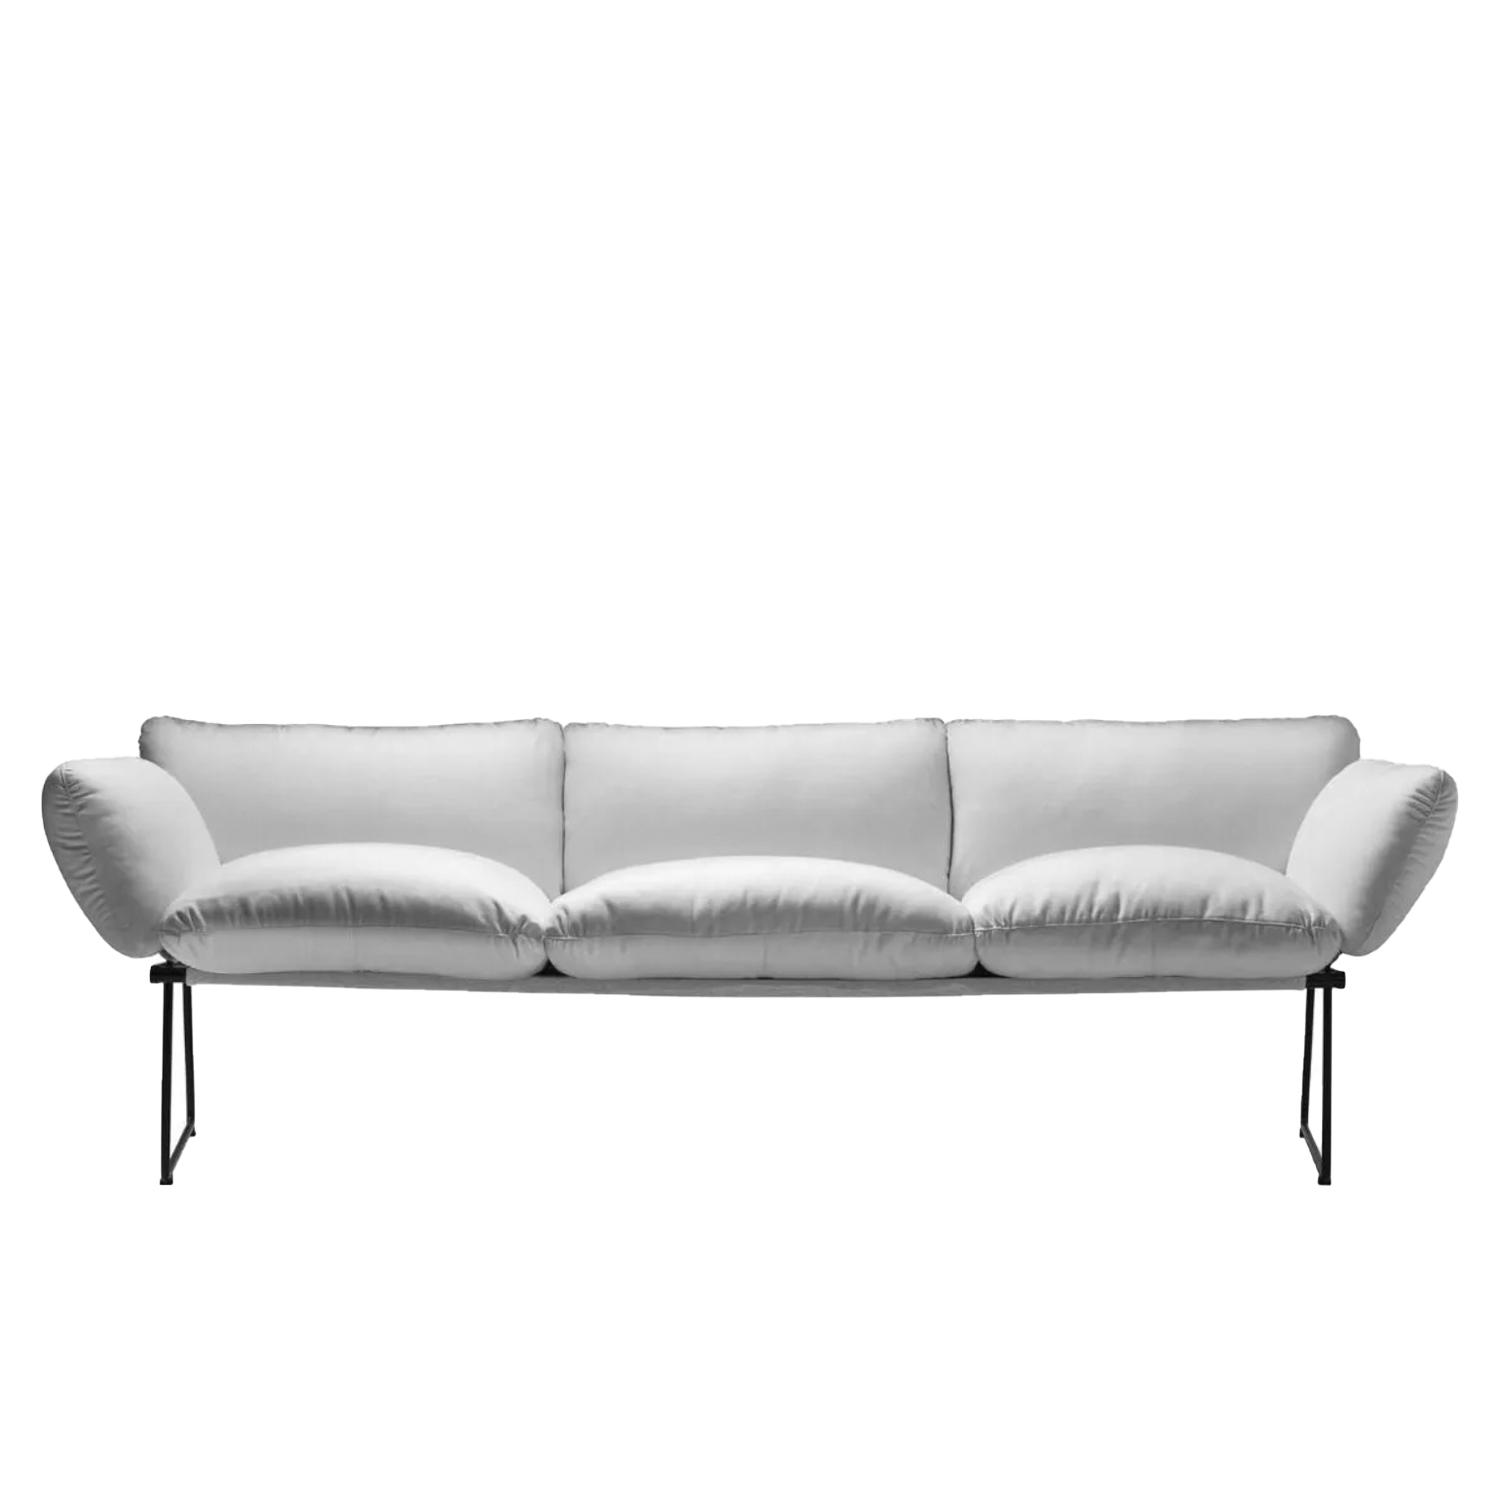 Elisa Three Seater Sofa - Synthesis of lightness and comfort, with a minimal and elegant design. From a project designed by Enzo Mari for Driade, Elisa is a collection of sofas and armchairs with a thin structure, in contrast with the soft volume of the cushions. Extremely comfortable thanks to the large and generous shapes of the polyurethane foam cushions, the Elisa sofa and armchair are characterized by the essential design of the base, a slender steel structure with sled supports that makes the whole elegant and light. Beautiful furnishing accessories which, thanks to the simplicity of their line, are refined and sophisticated. The sofa is proposed in the two dimensional variant with two and three seats and with covering to choose from in a wide range of colors. Available in indoor and outdoor versions.